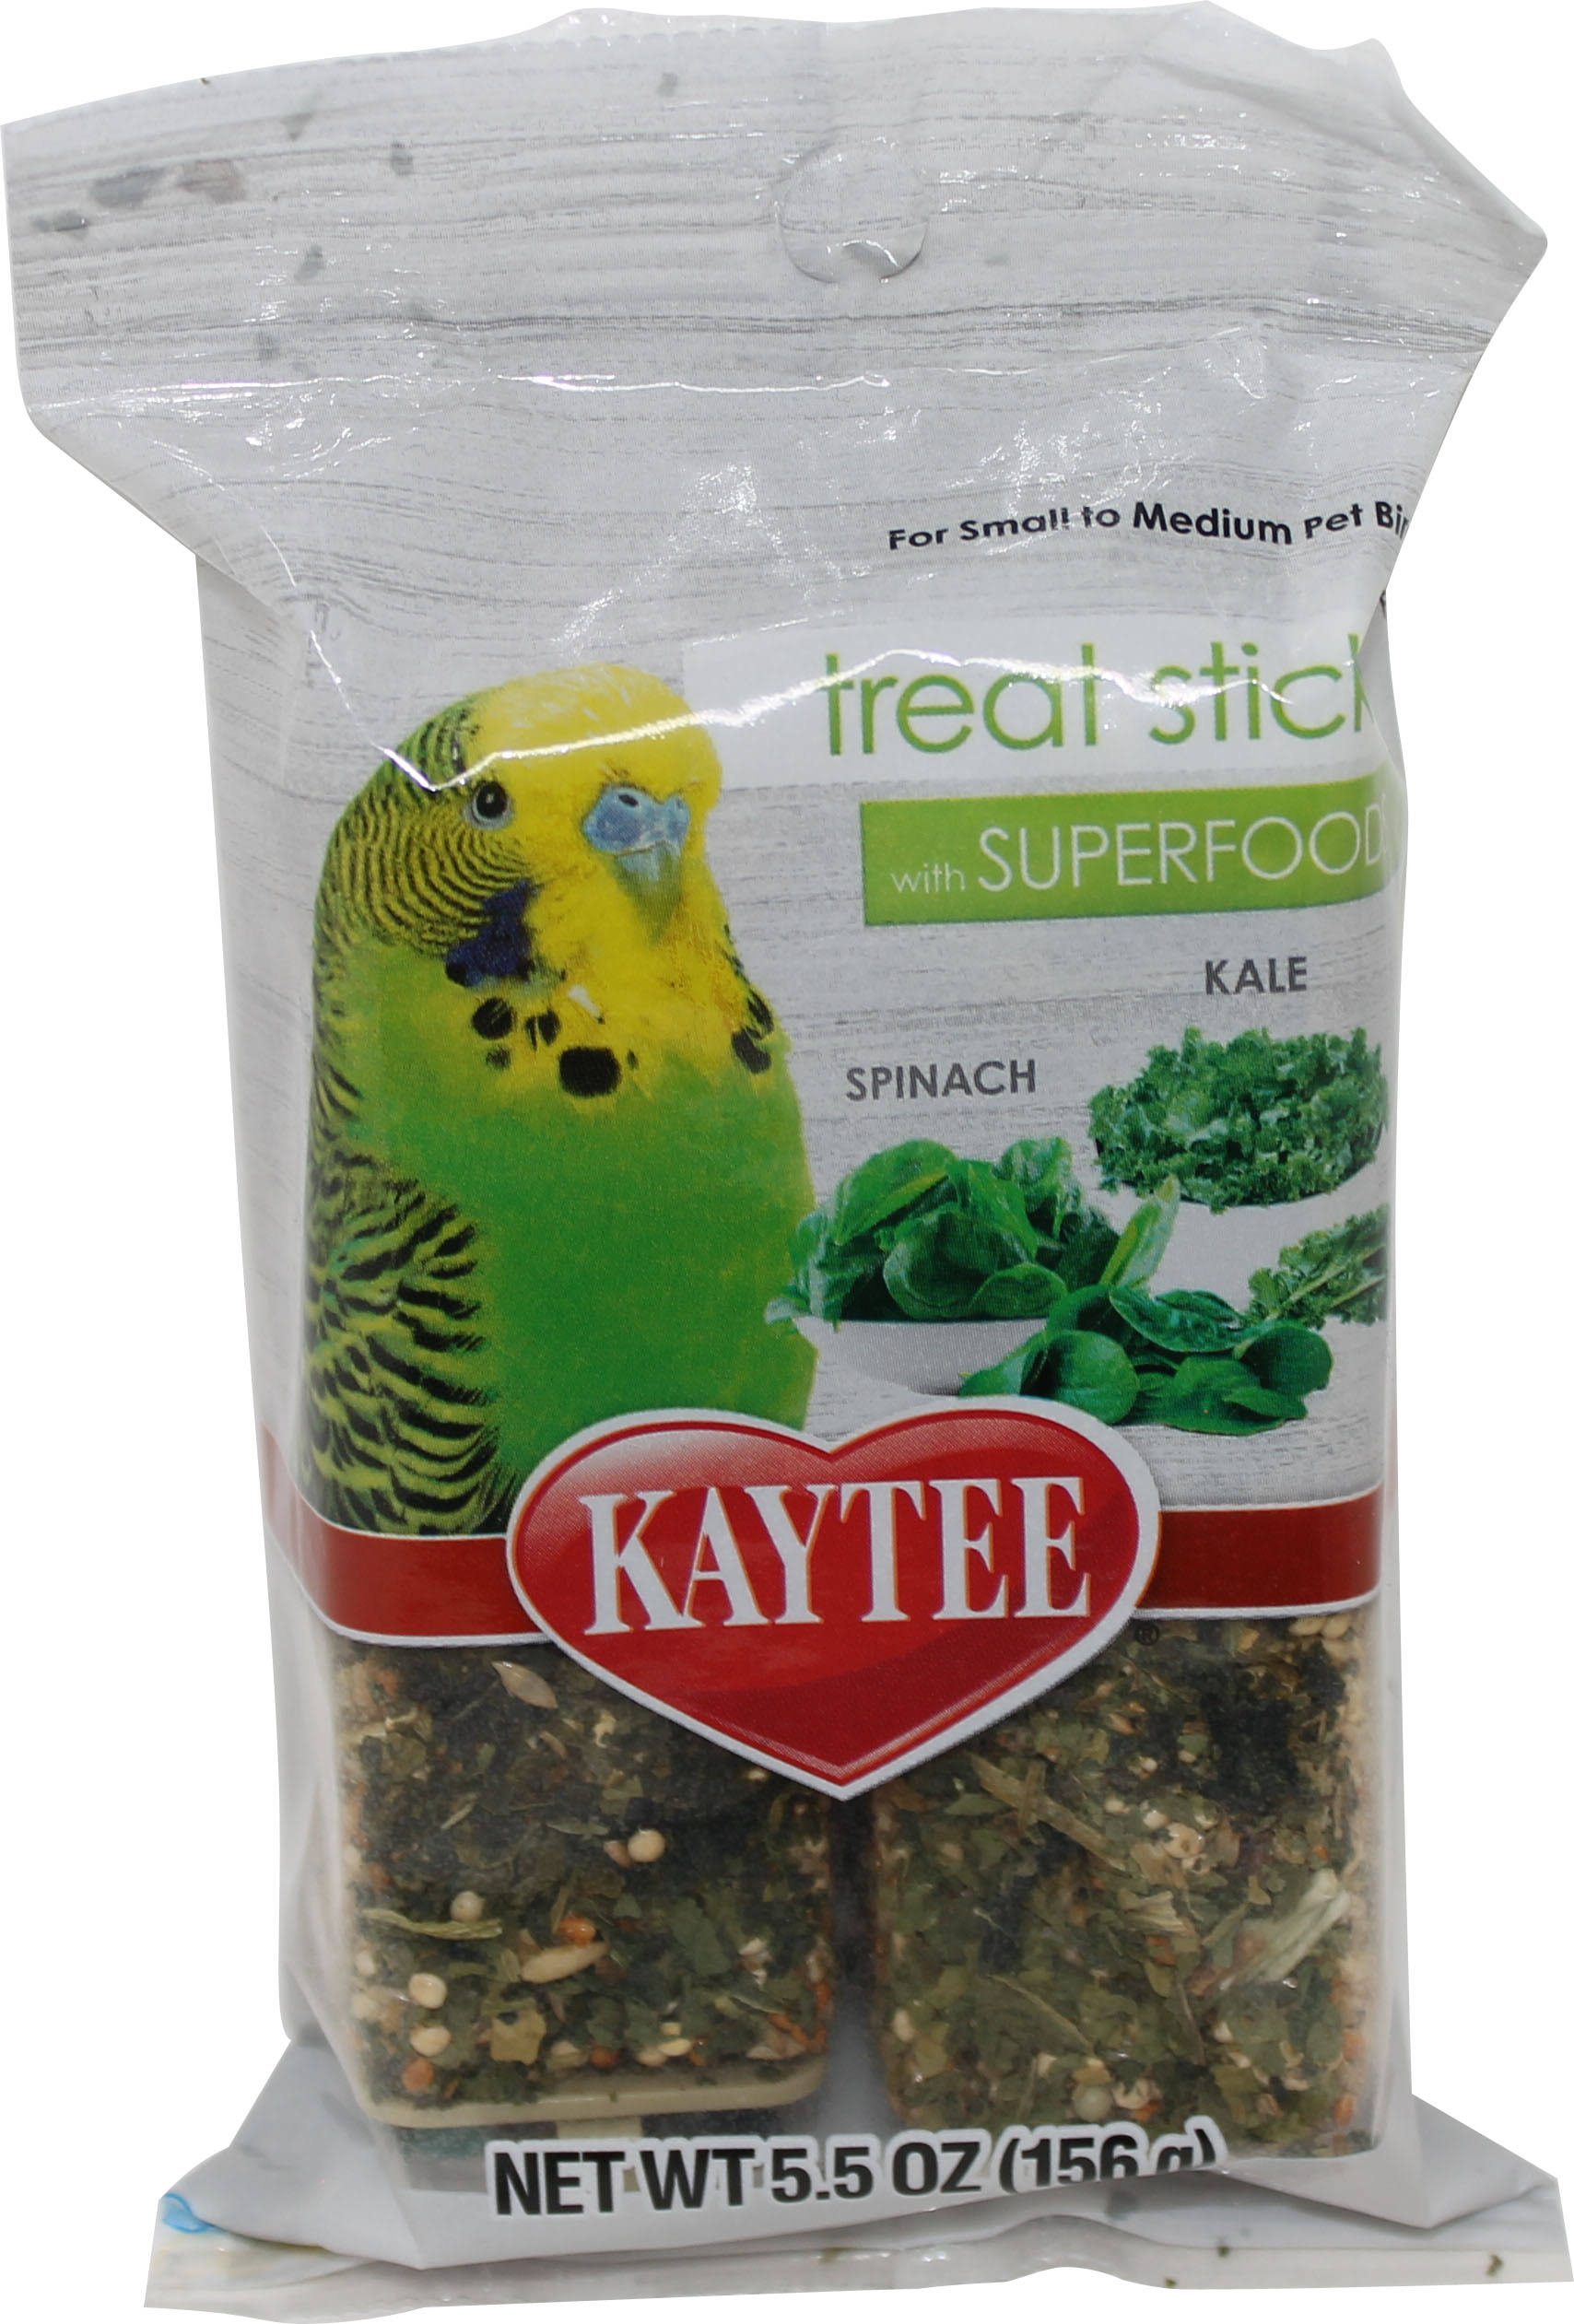 Kaytee Walnut and Almonds Avian Treat Stick with Superfood - 156g